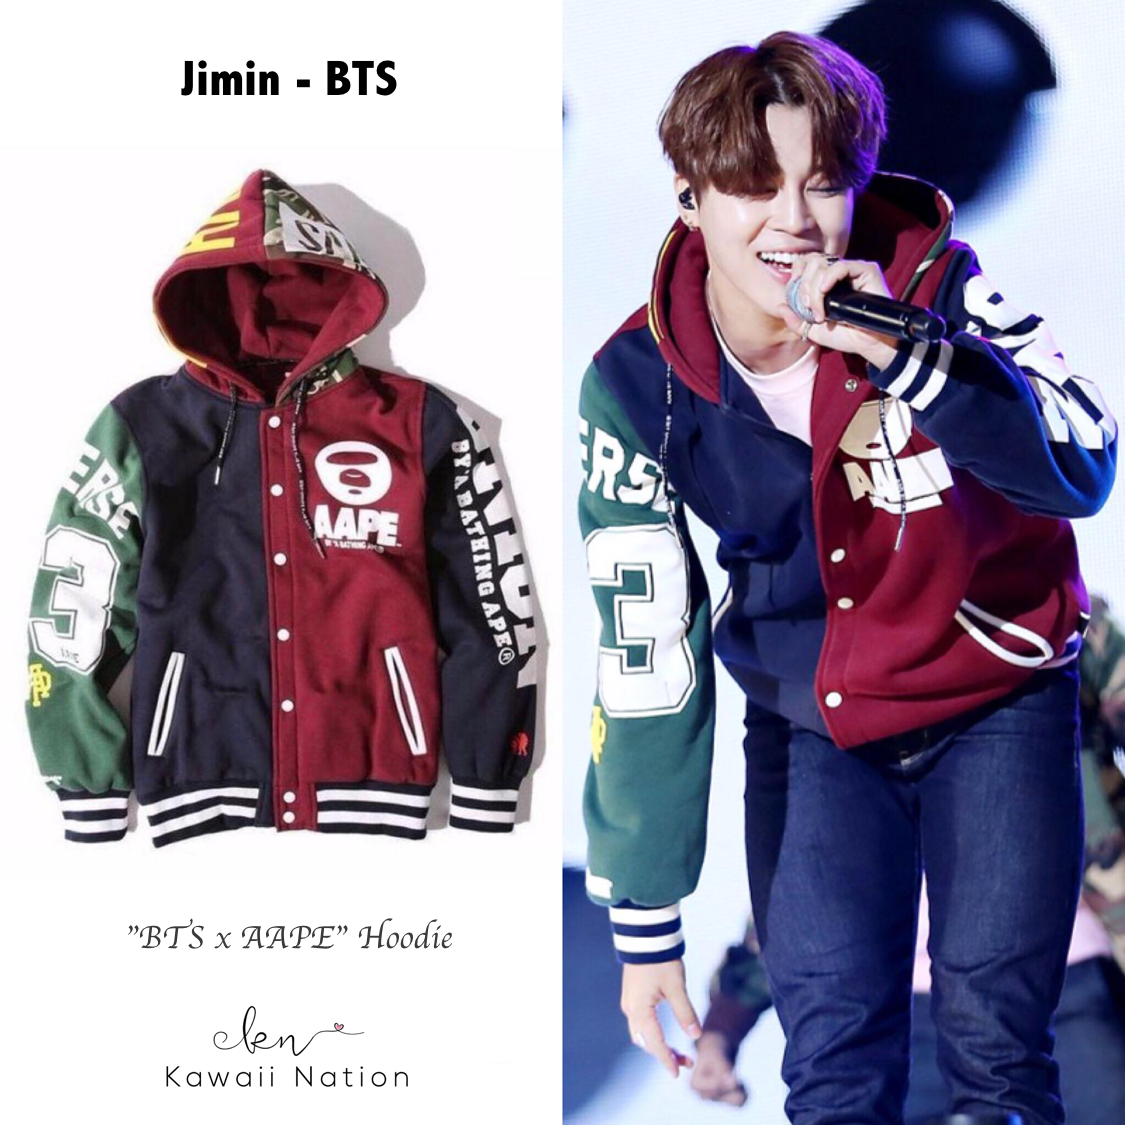 553735a8b BTS Fashion Inspired Outfits V Tae-hyung Jungkook RM Rap Monsta Jin Jimin  JHope Suga Kawaii Nation celebs kpop tshirt hoodie idol bt21 cute fashion  harajuku